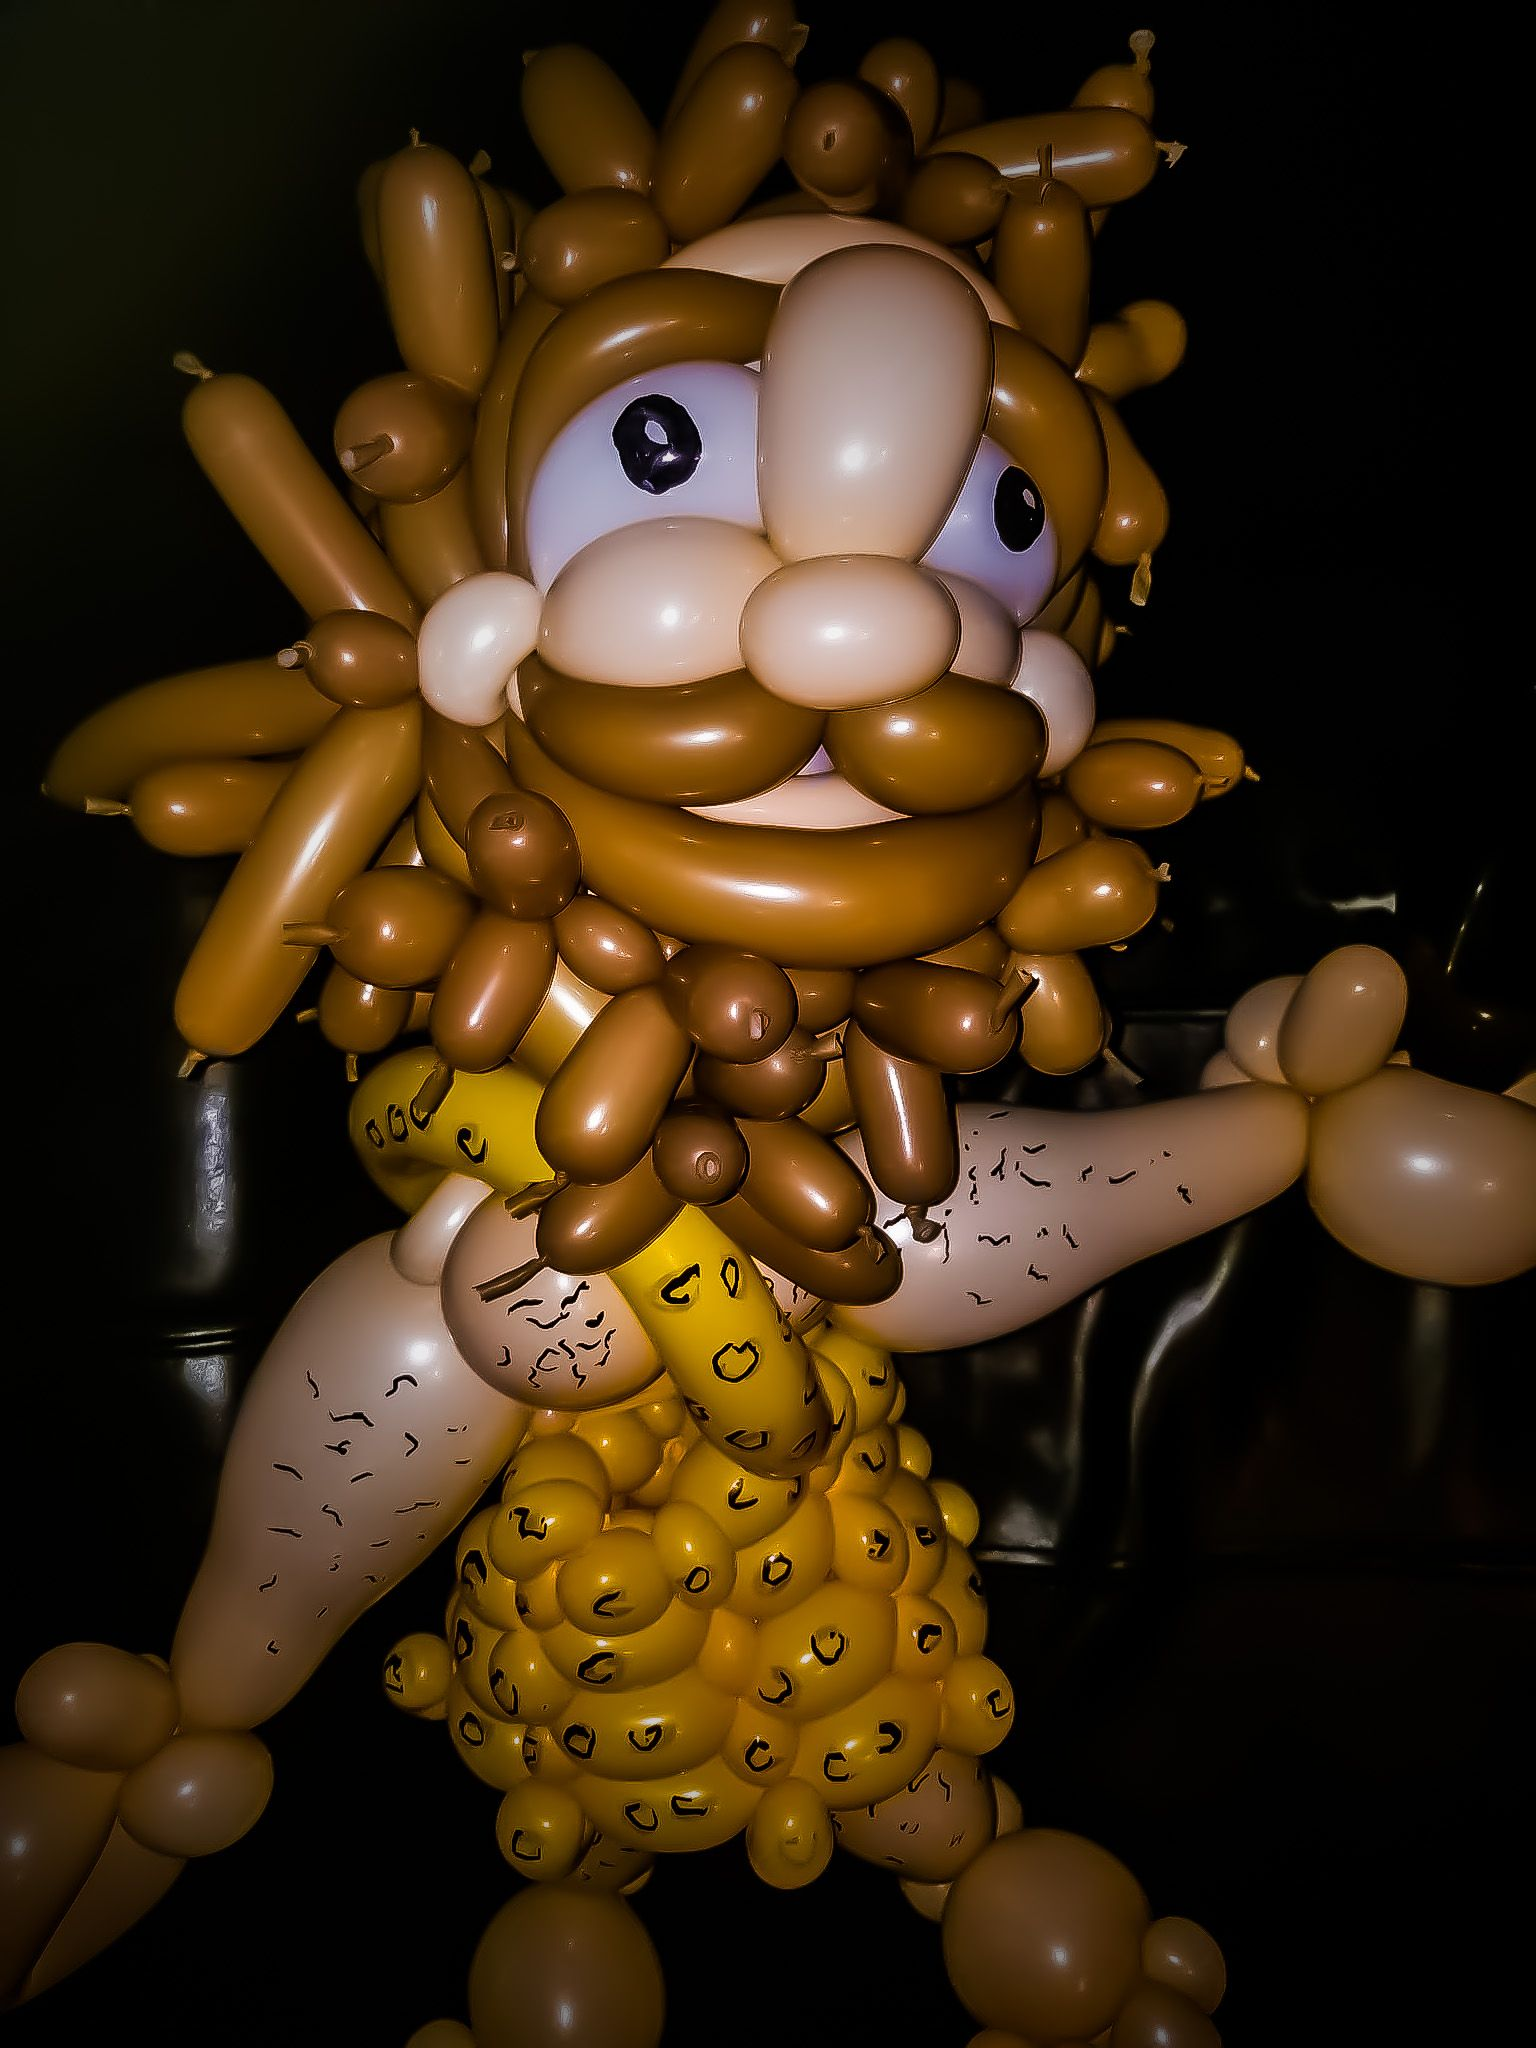 Caveman Balloon Sculpture By Las Vegas Twister Jeremy Johnston For Birthday Party Atomic Company Offers Services Parties Events